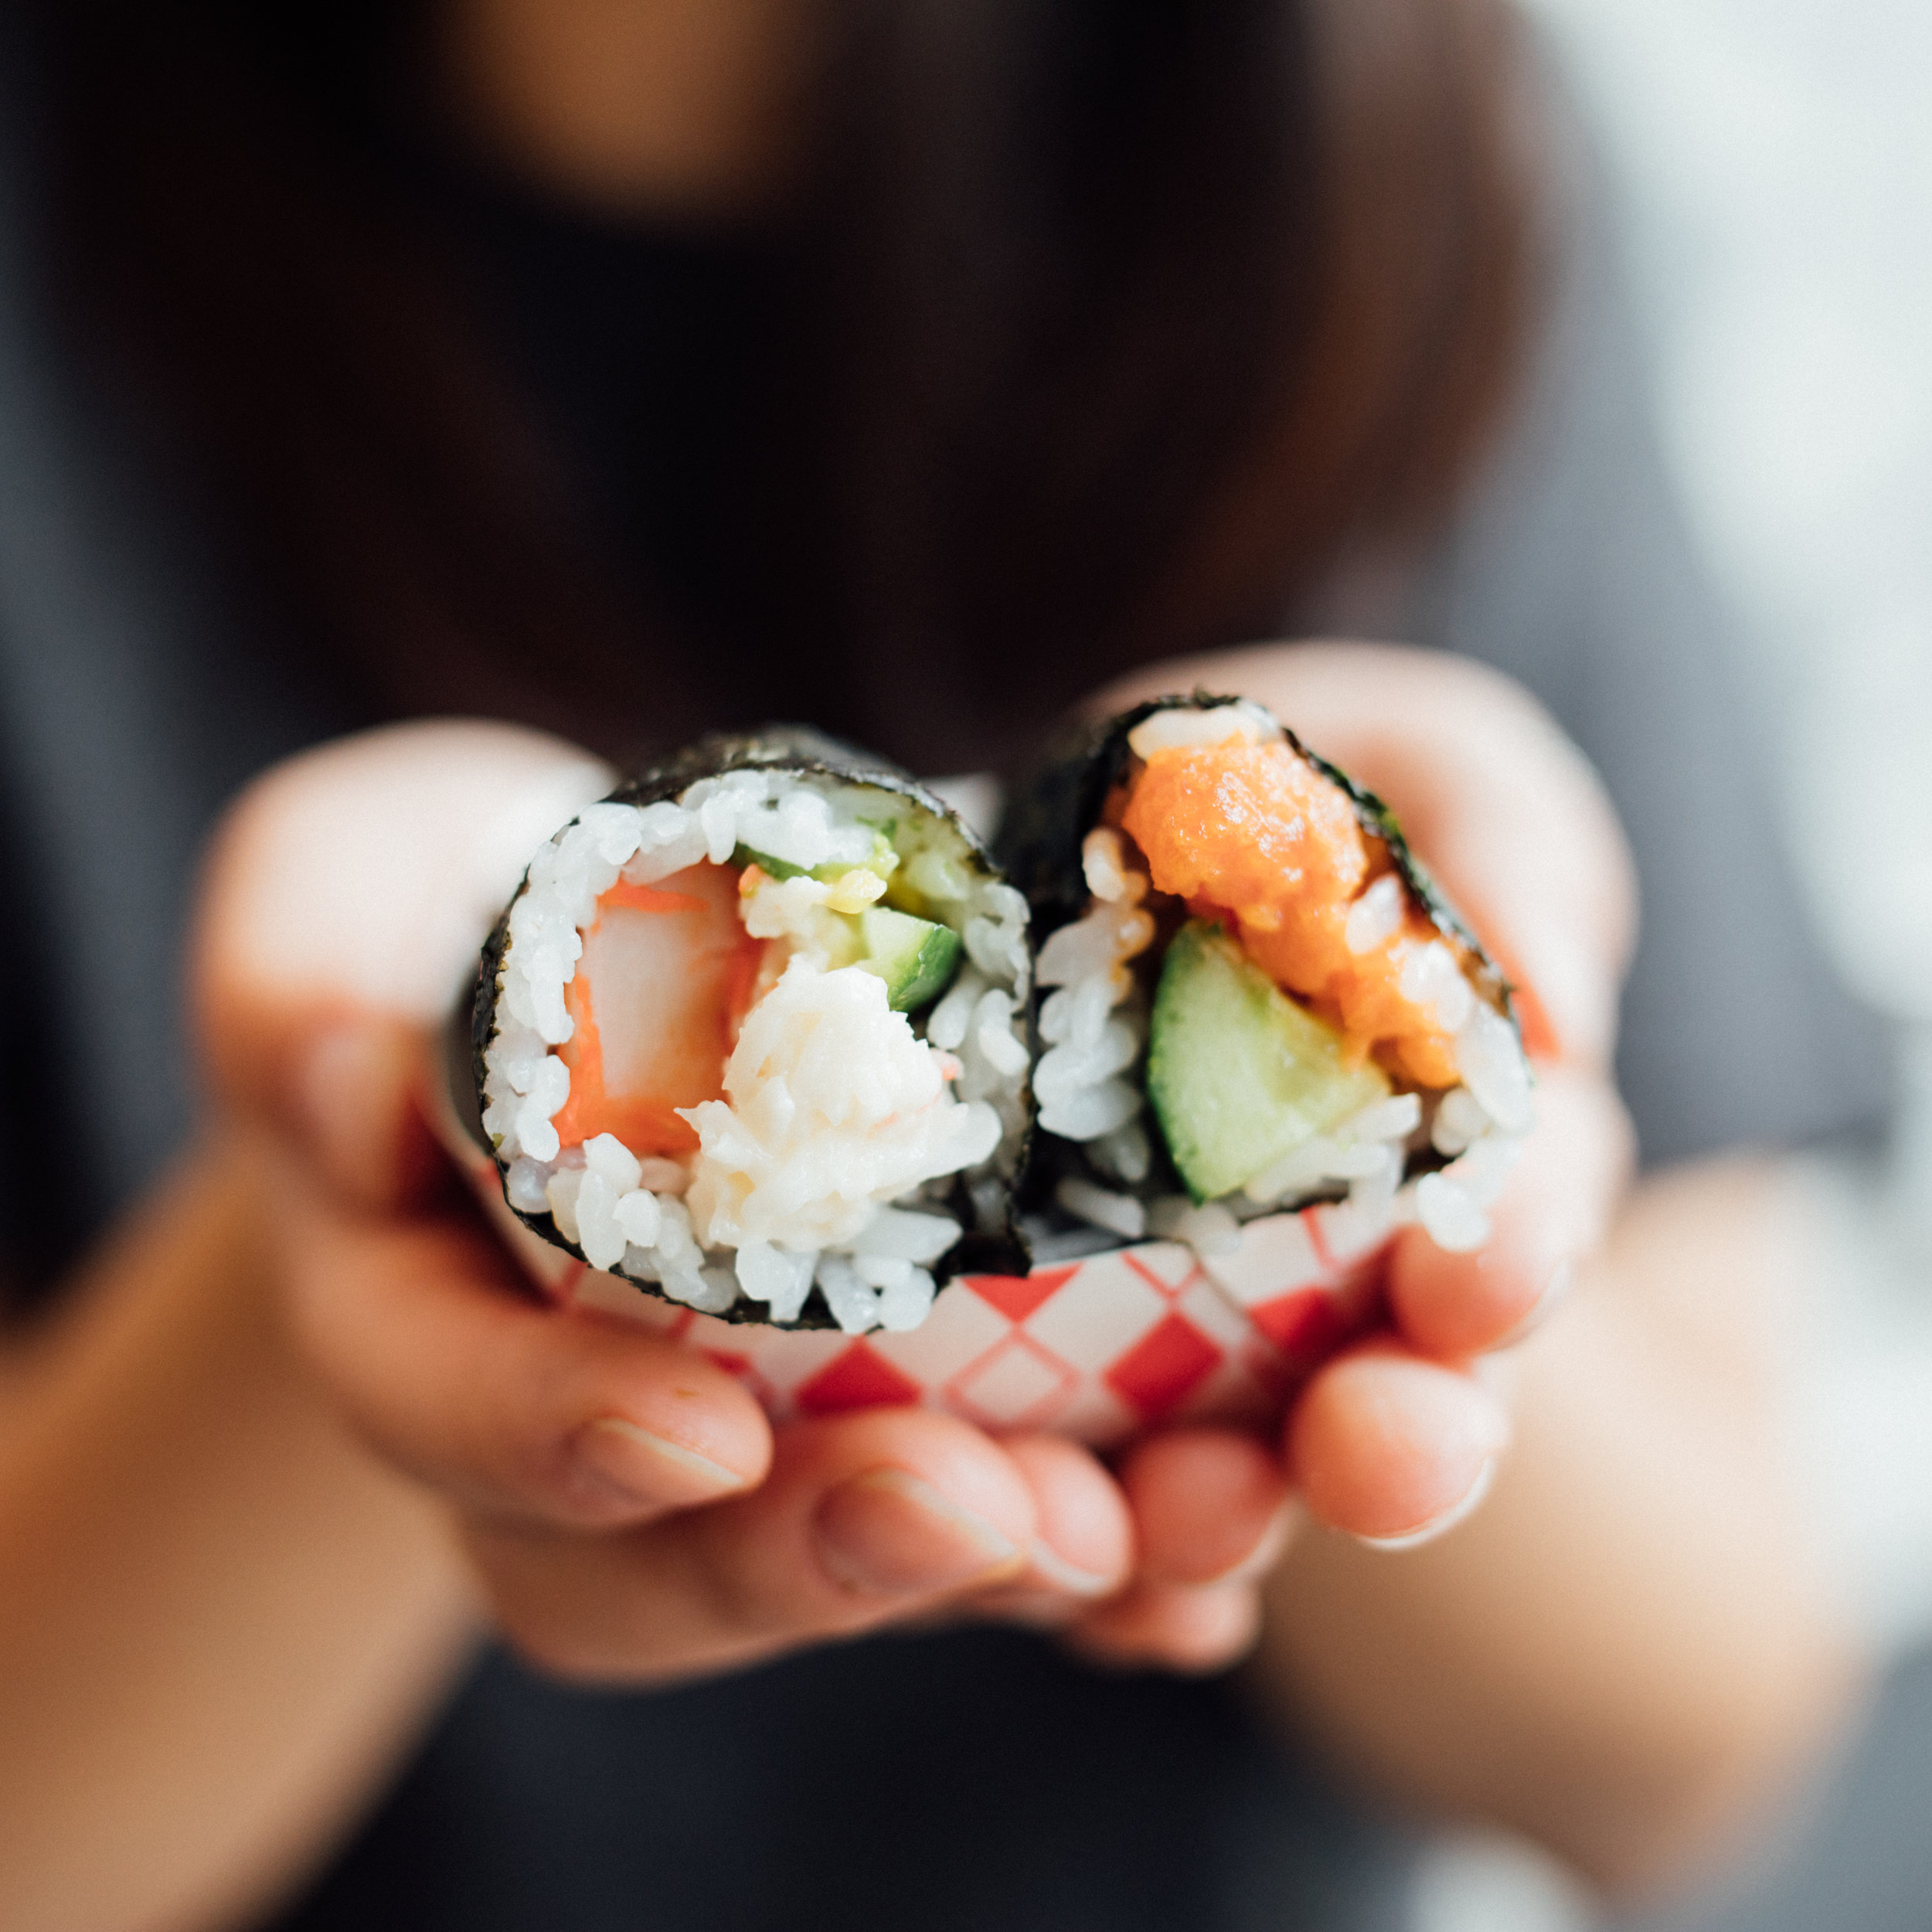 What we do - Meet regularly (often over sushi)Provide free consultations to studentsDevelop and collate sustainability communications toolsOrganise and facilitate student workshops and events